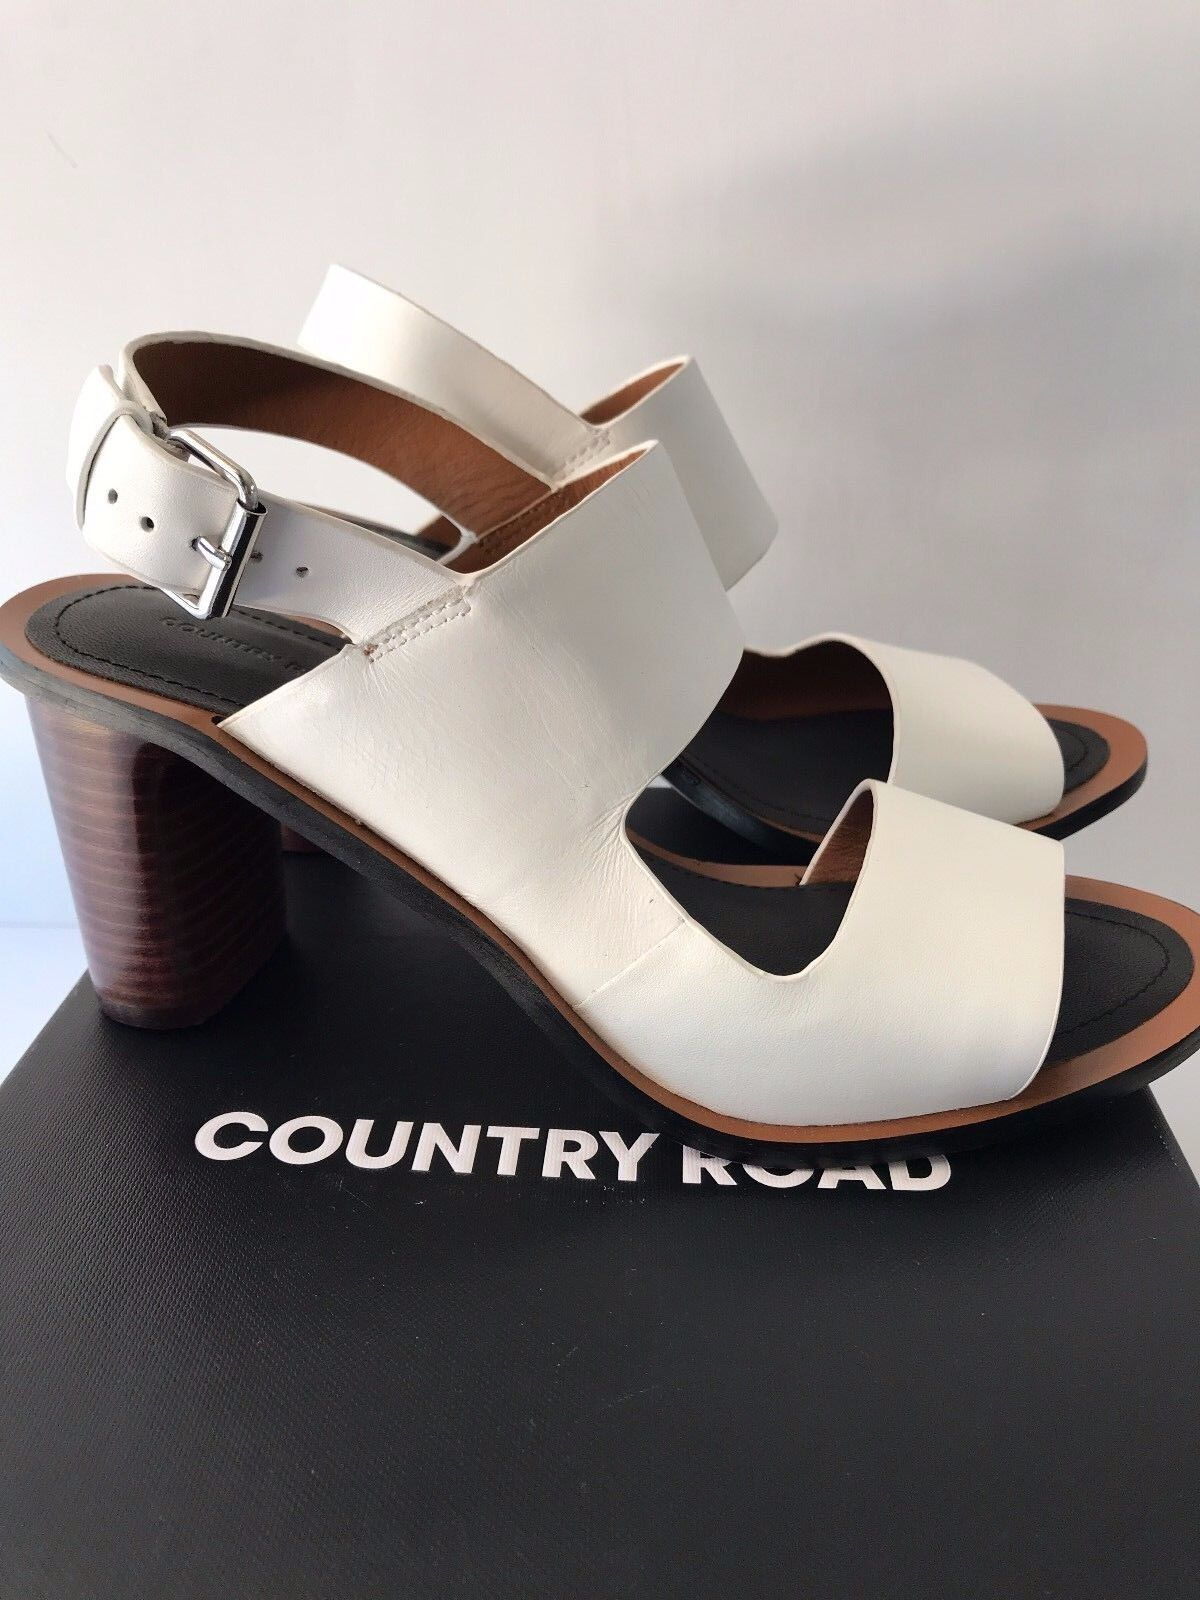 COUNTRY ROAD [CR LOVE] NEW! SZ 38,39,40,41 ANNALISE HEEL LEATHER WHITE 7,8,9,10